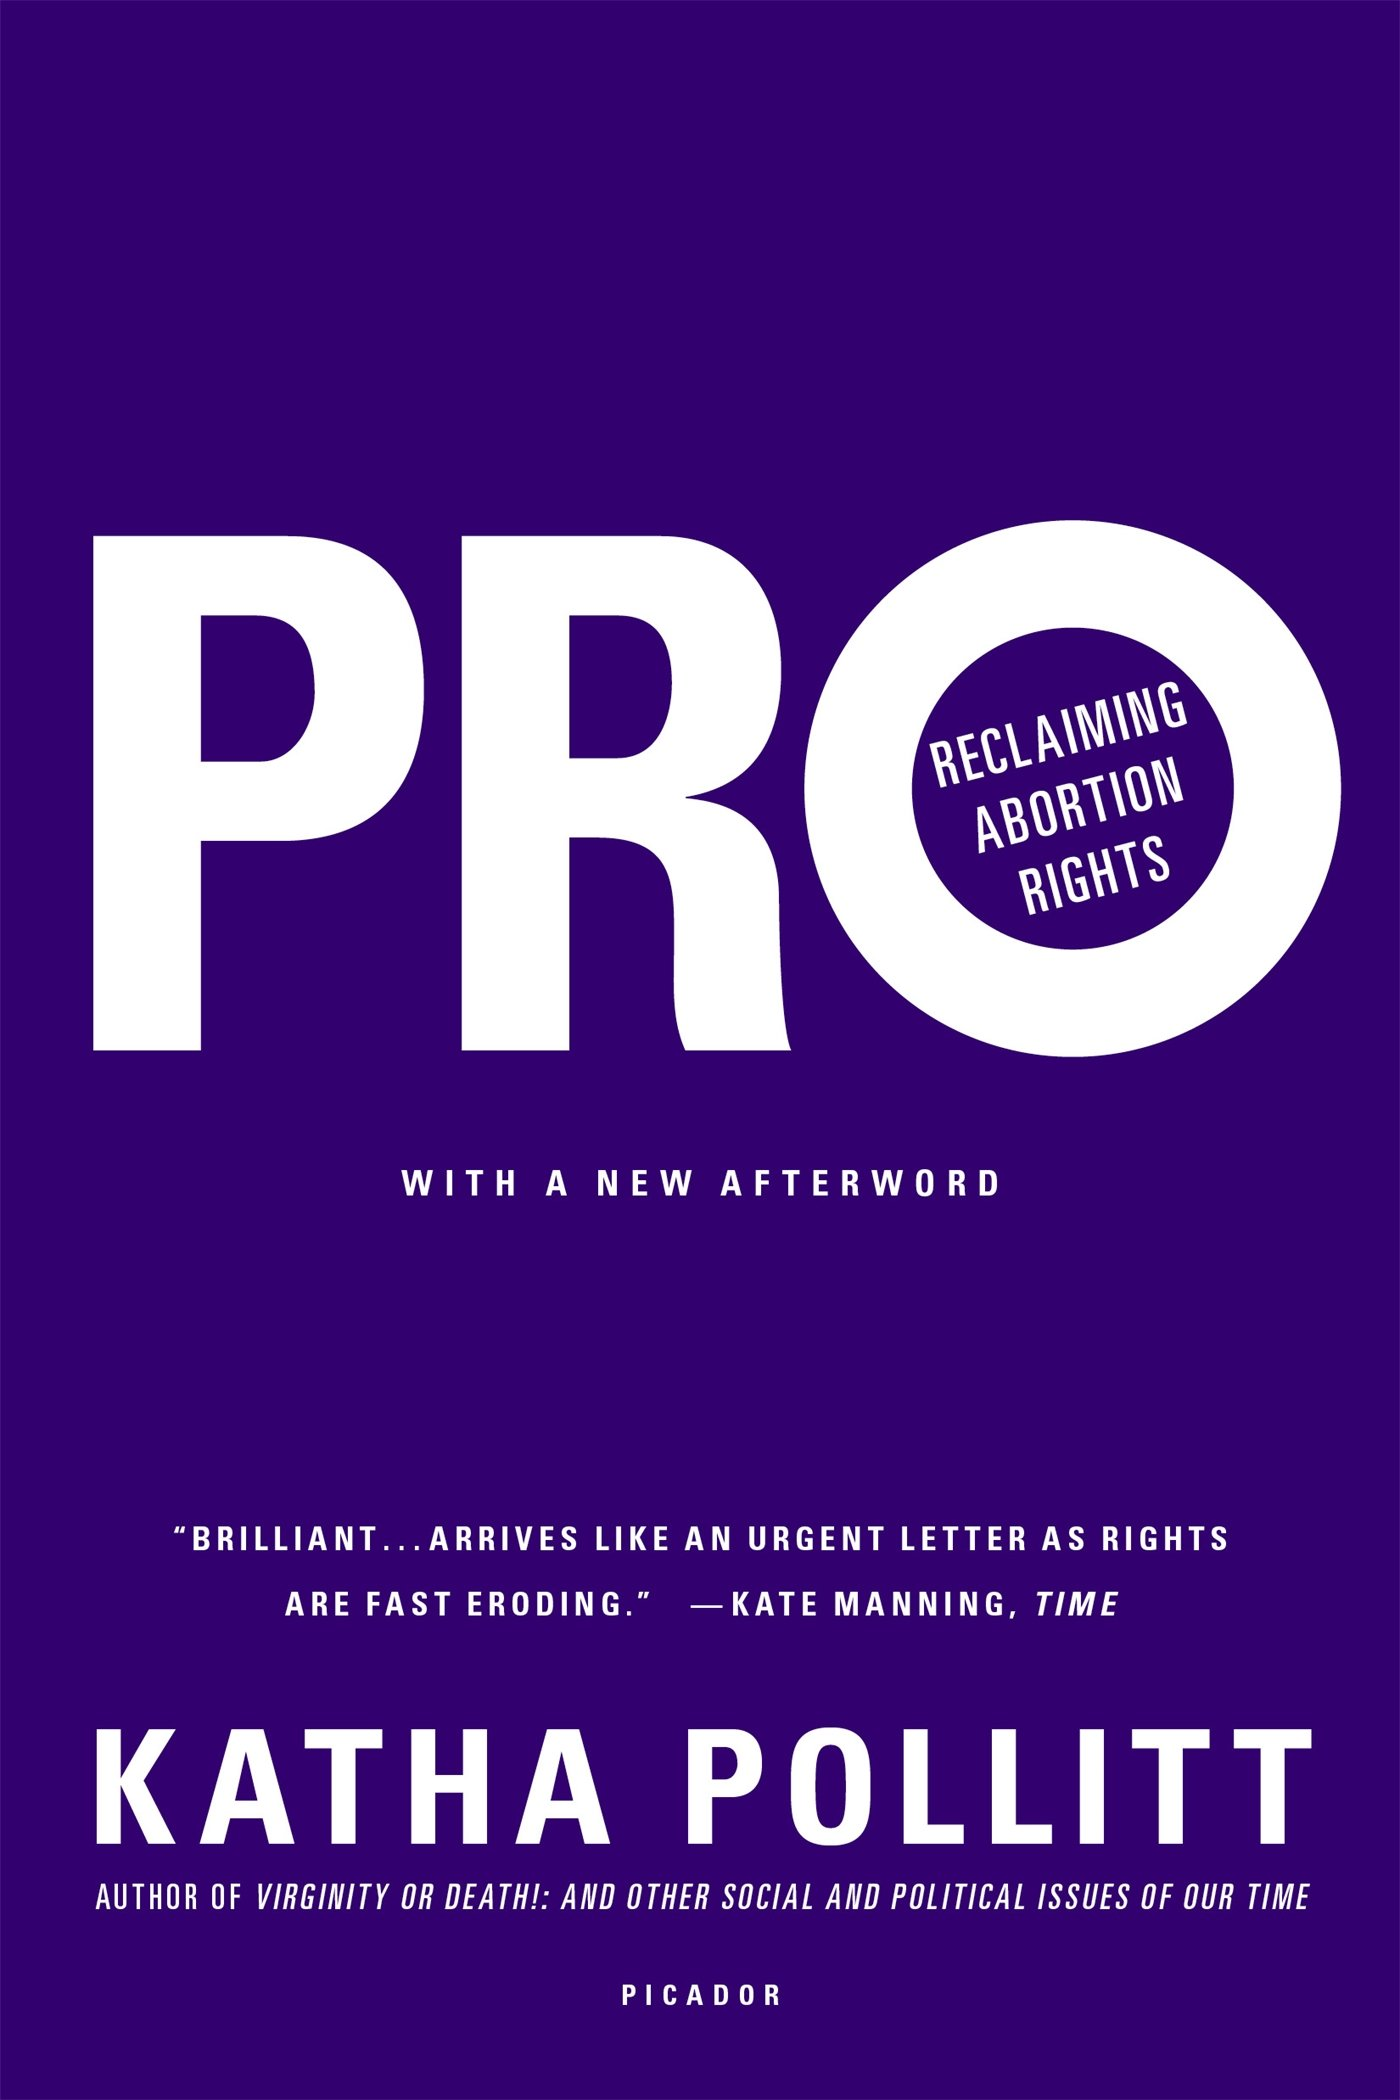 pro reclaiming abortion rights katha pollitt 9781250072665 pro reclaiming abortion rights katha pollitt 9781250072665 com books